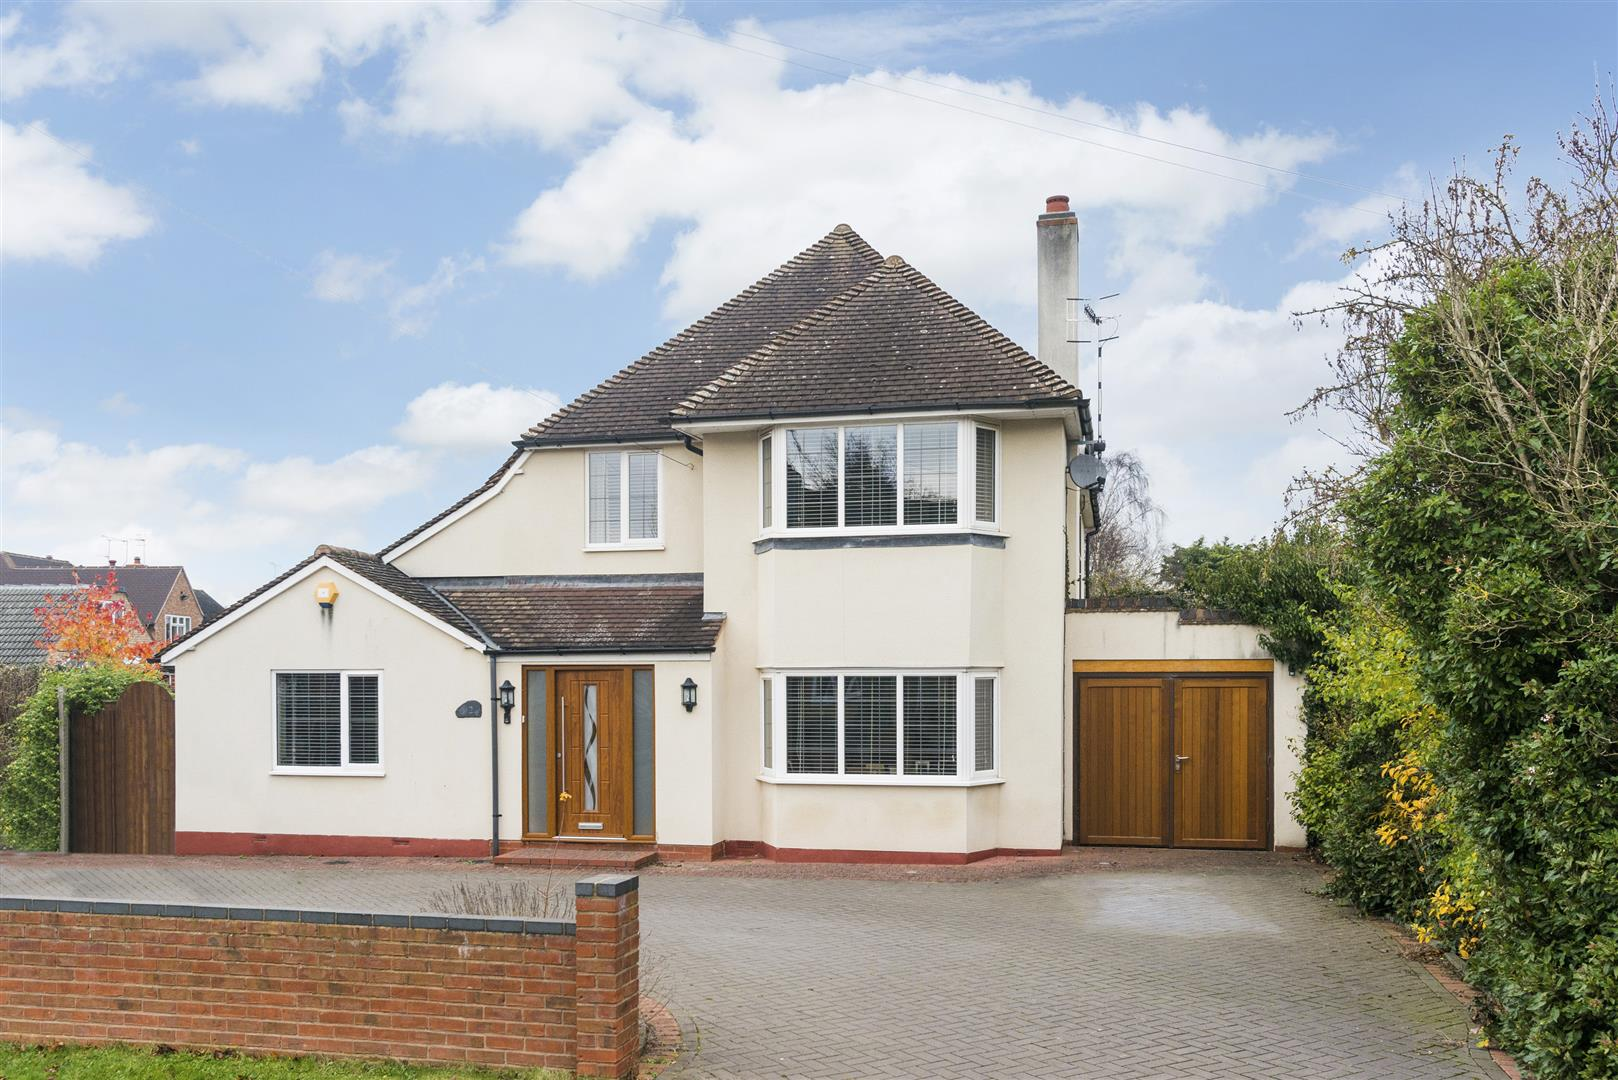 4 Bedrooms Detached House for sale in Saintbury Close, Stratford-Upon-Avon